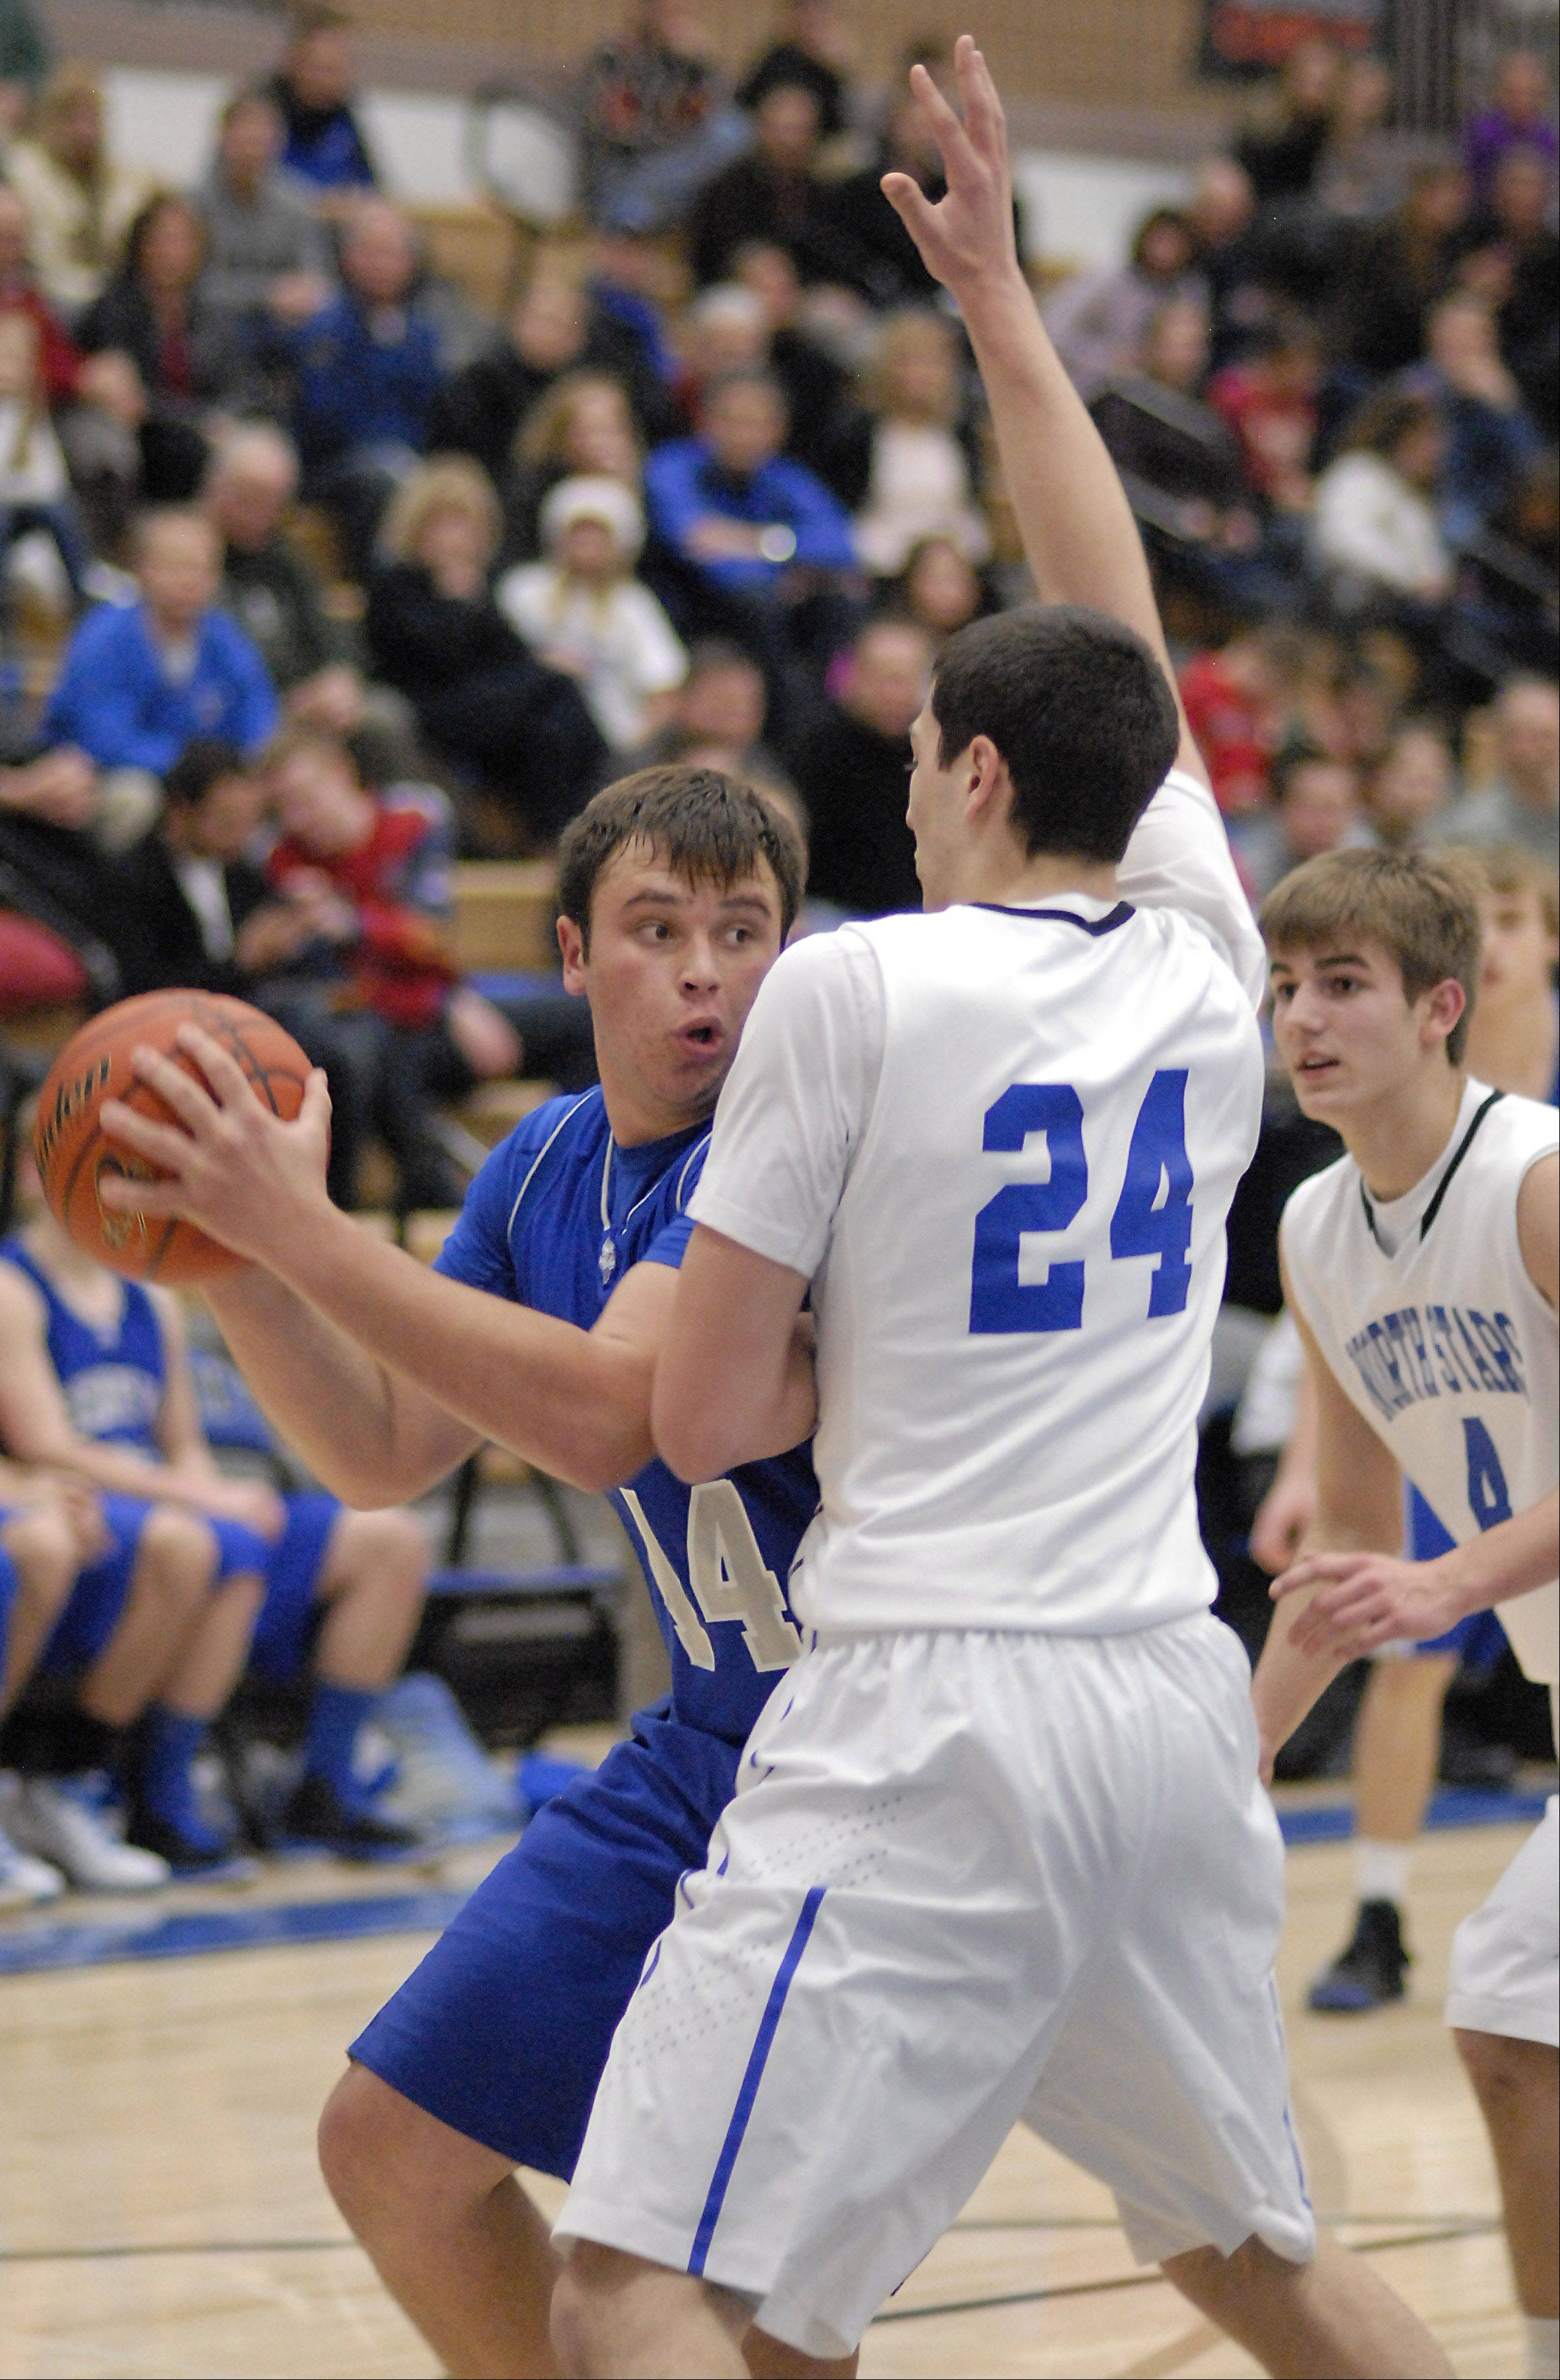 Geneva's Connor Chapman attempts to pass around St. Charles North's Chris Preocanin in the third quarter on Friday, December 21.